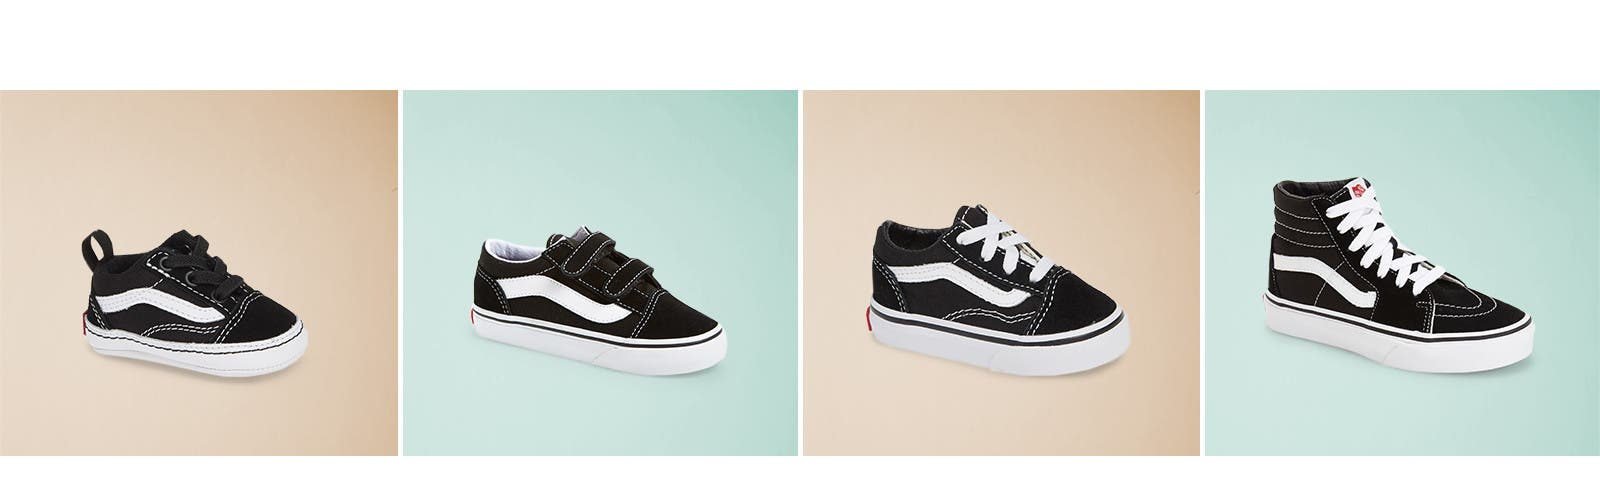 The coolest boys' sneakers from Vans, Nike and more.